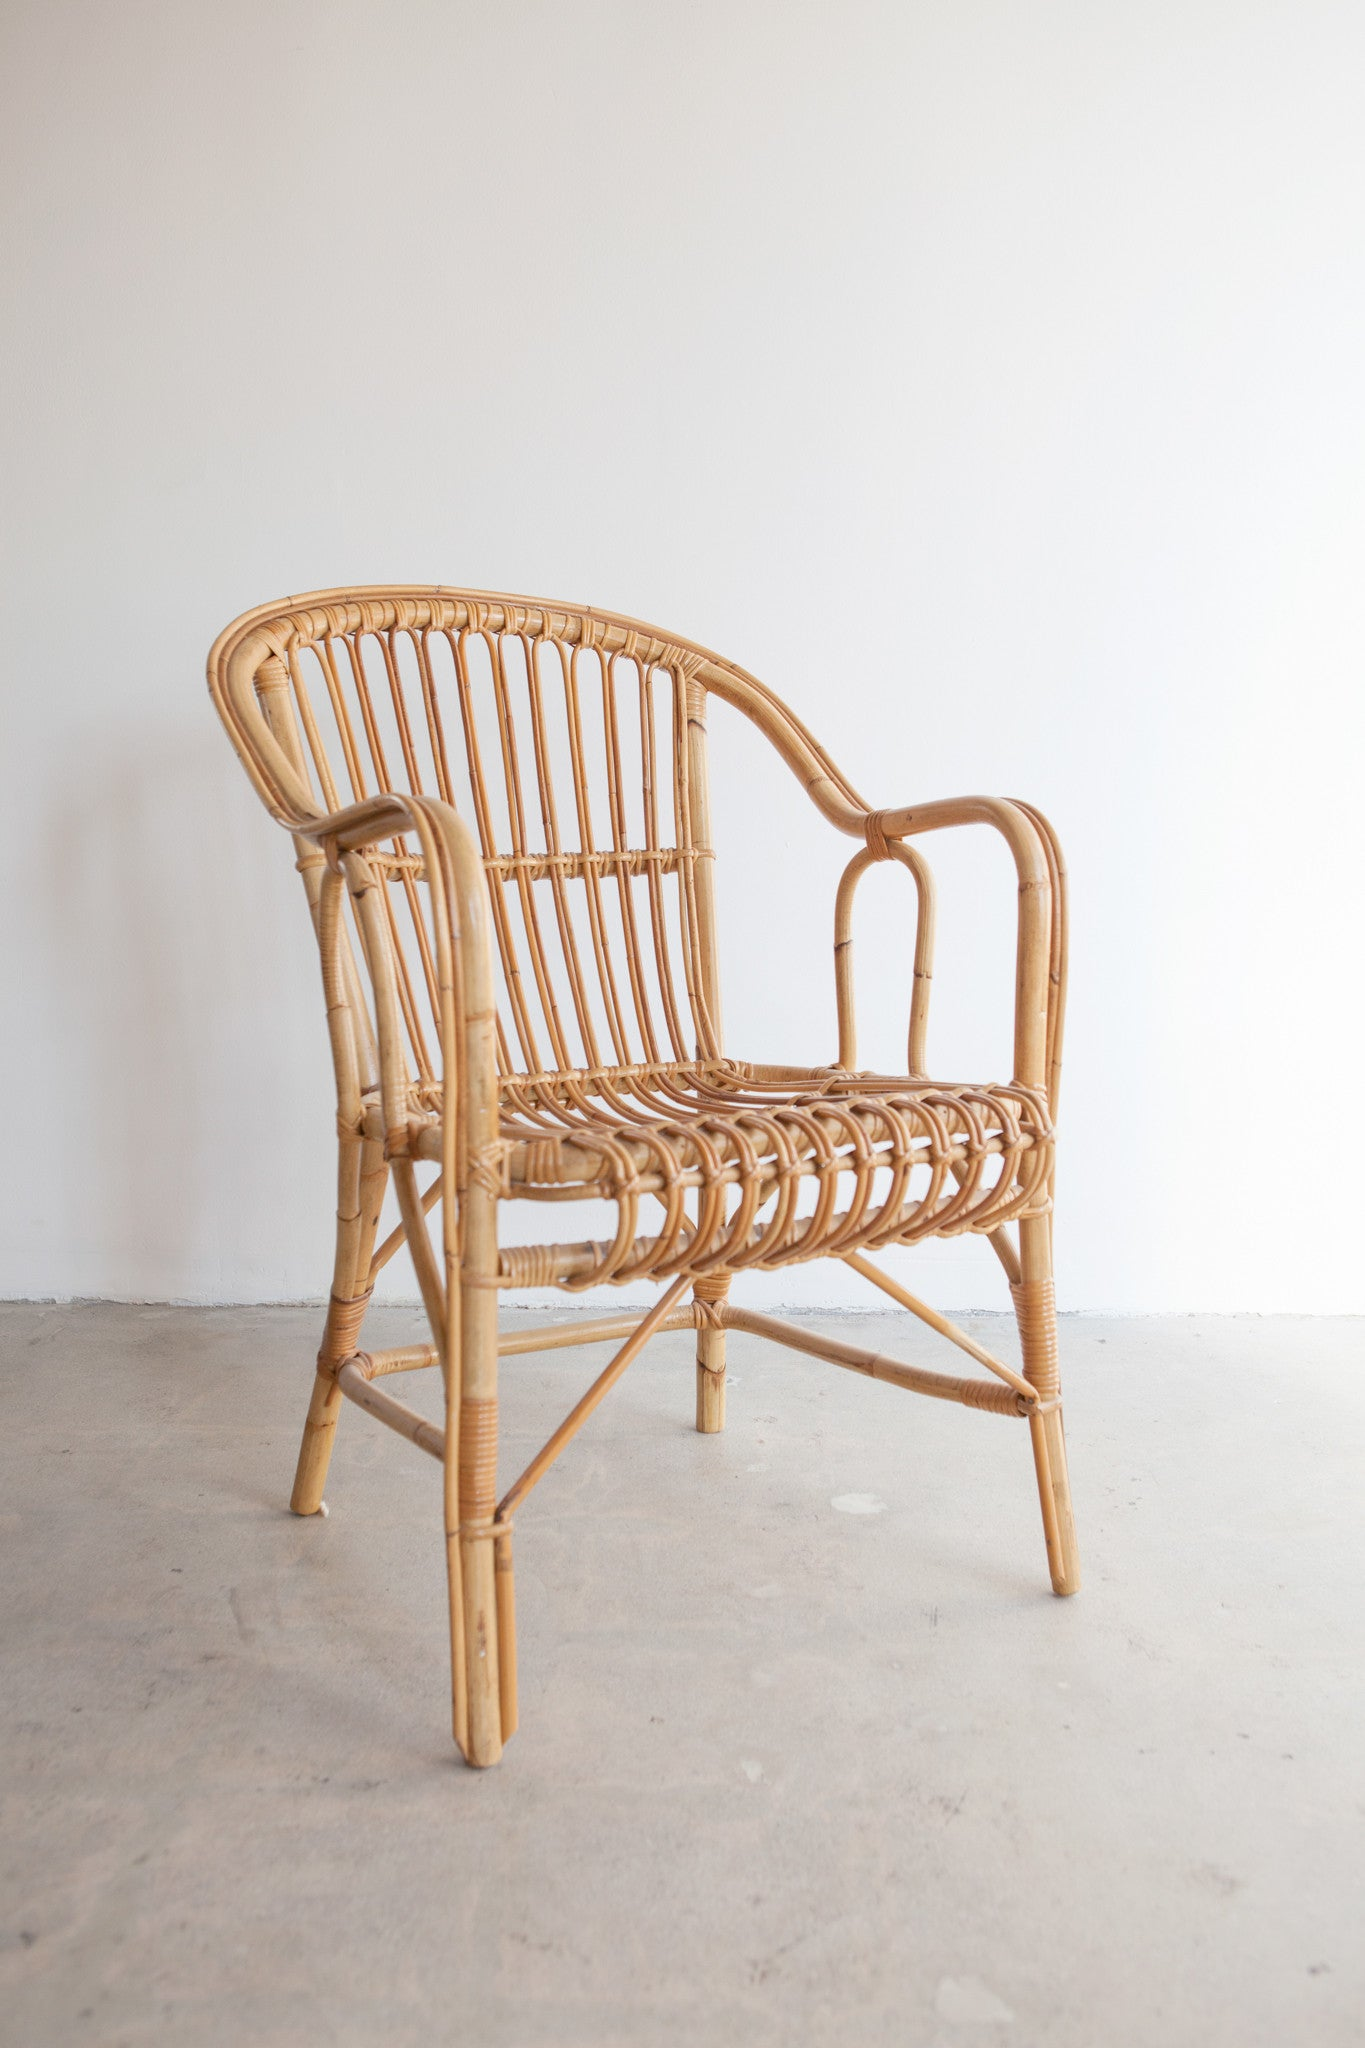 Vintage Rattan Chairs SOLD OUT